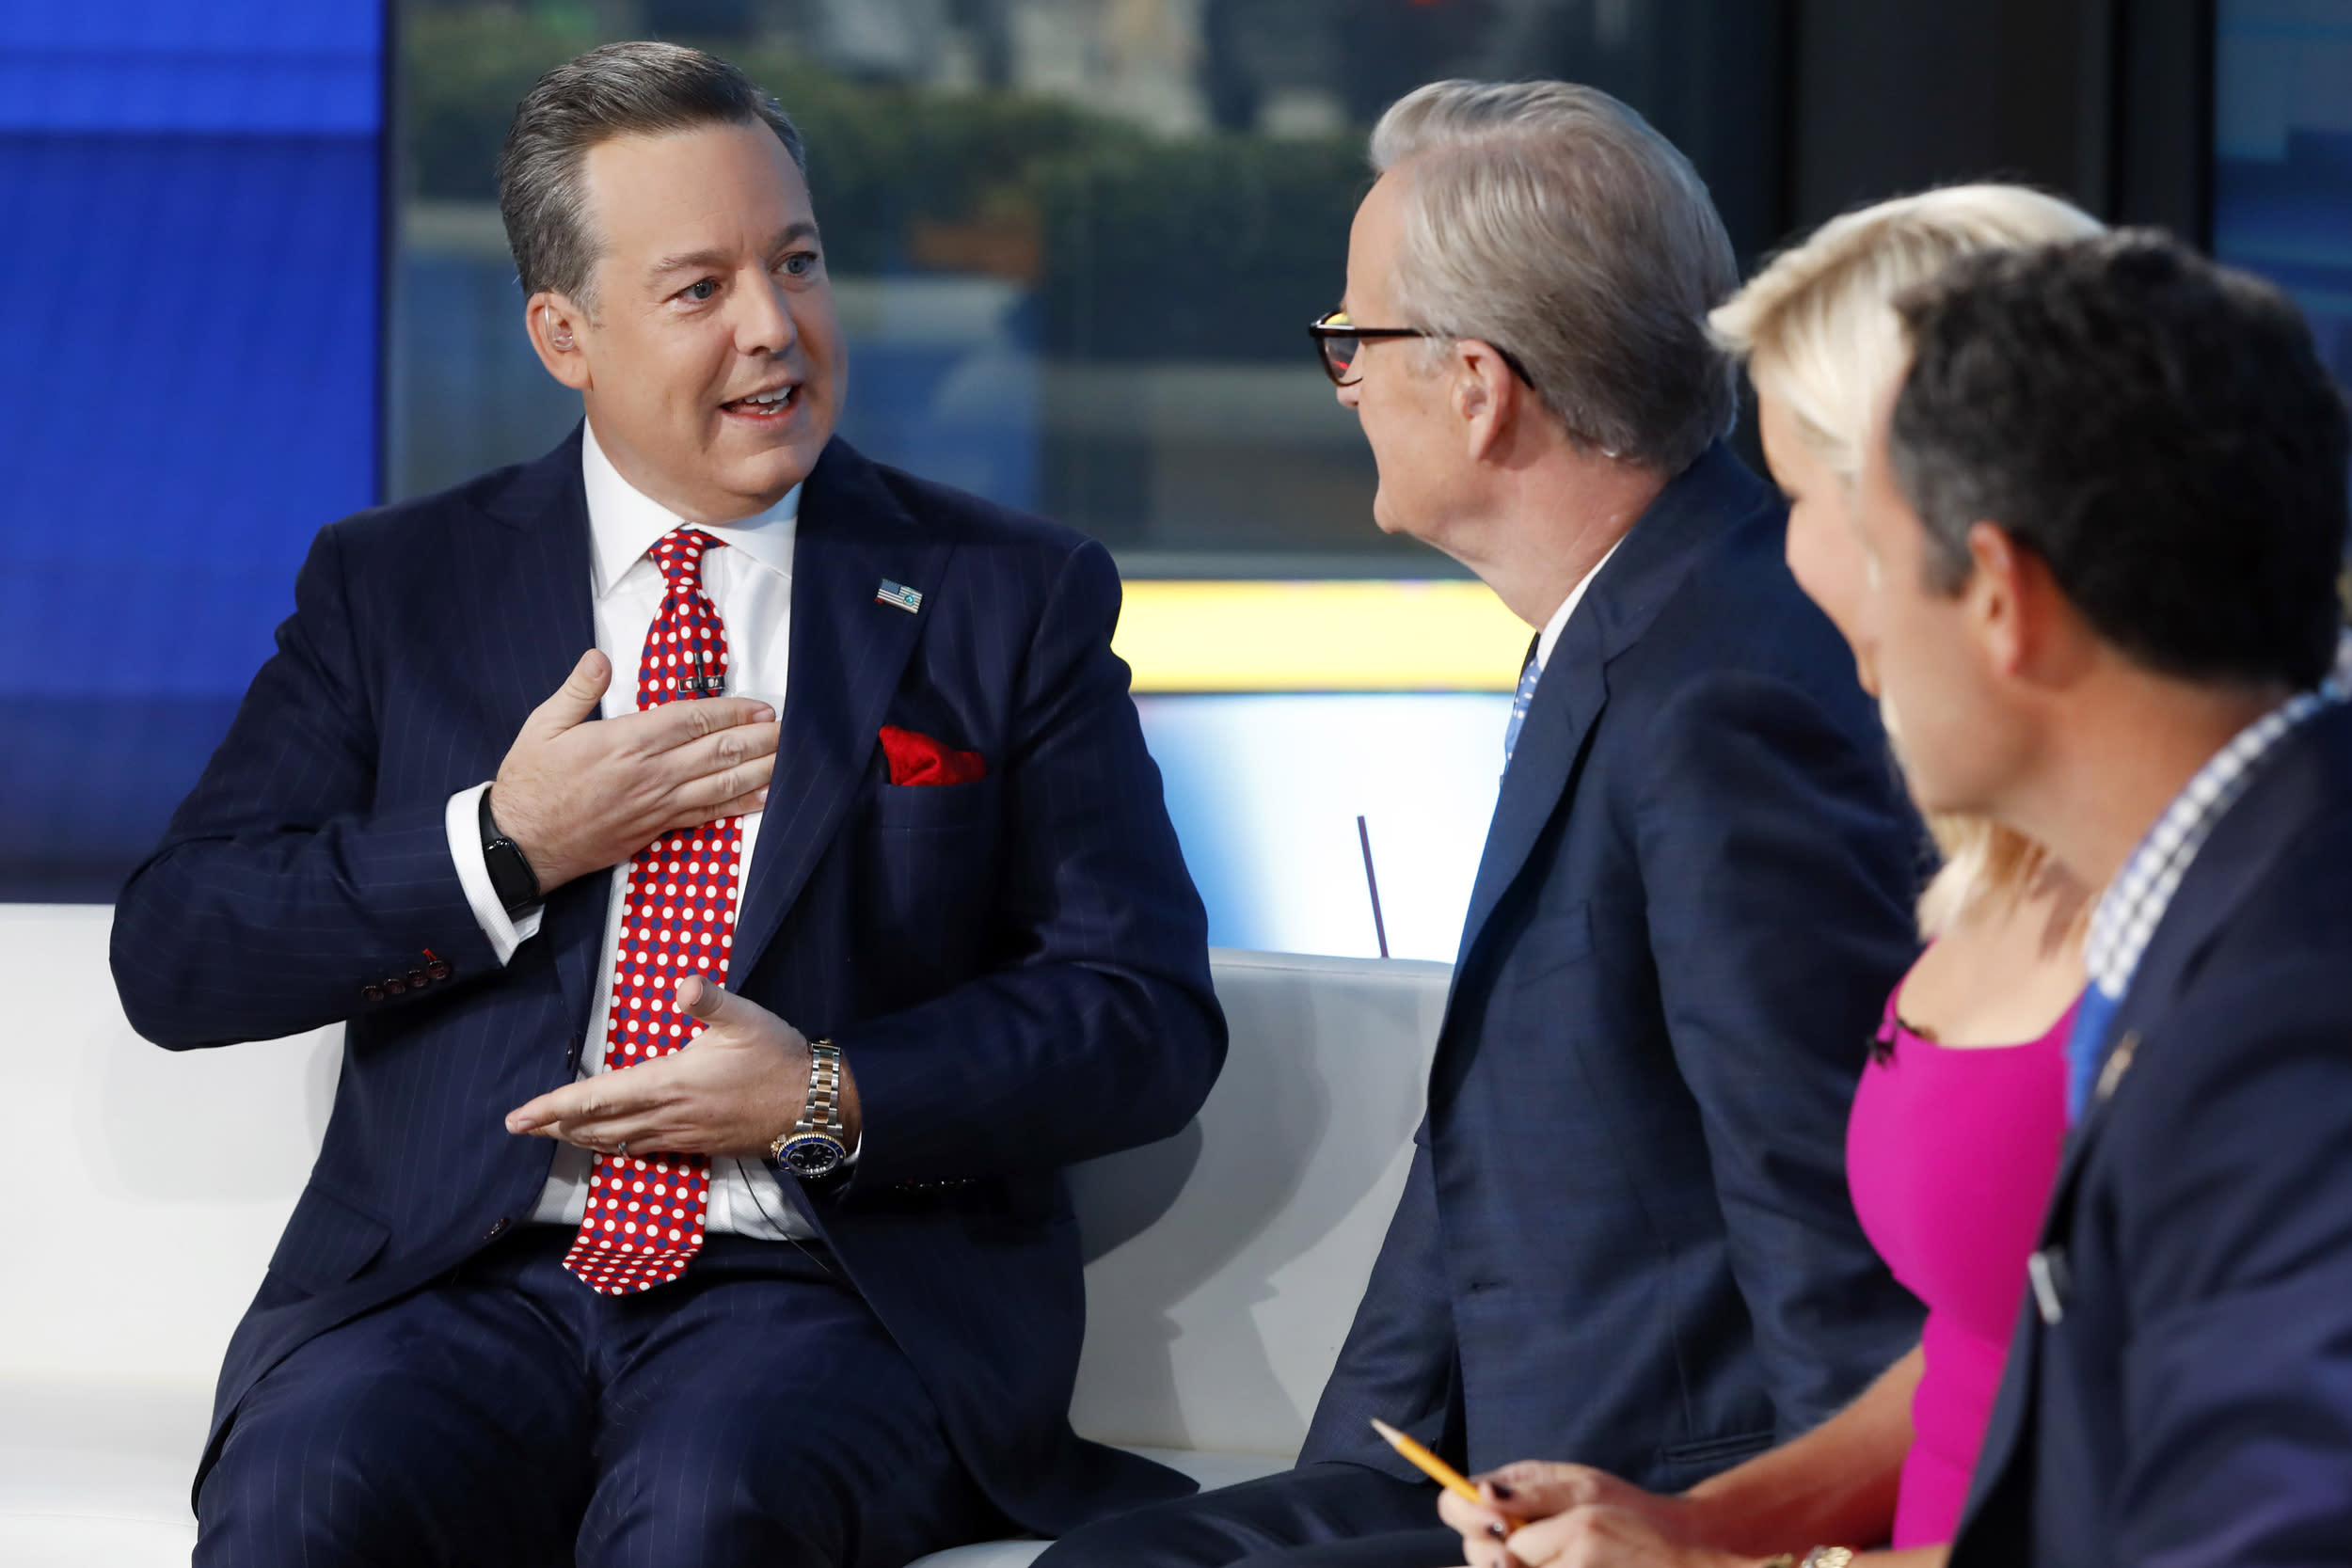 Fox News anchor Ed Henry fired over sexual misconduct allegation